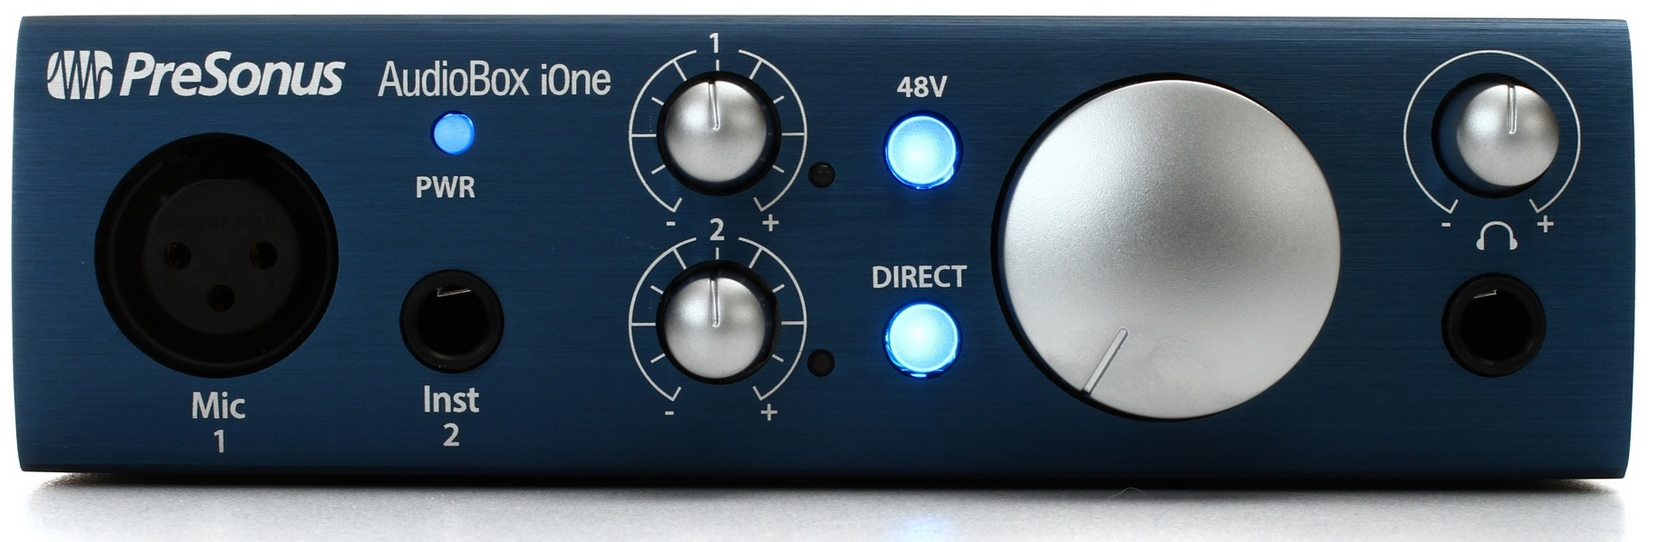 presonus-audiobox-ione.jpg